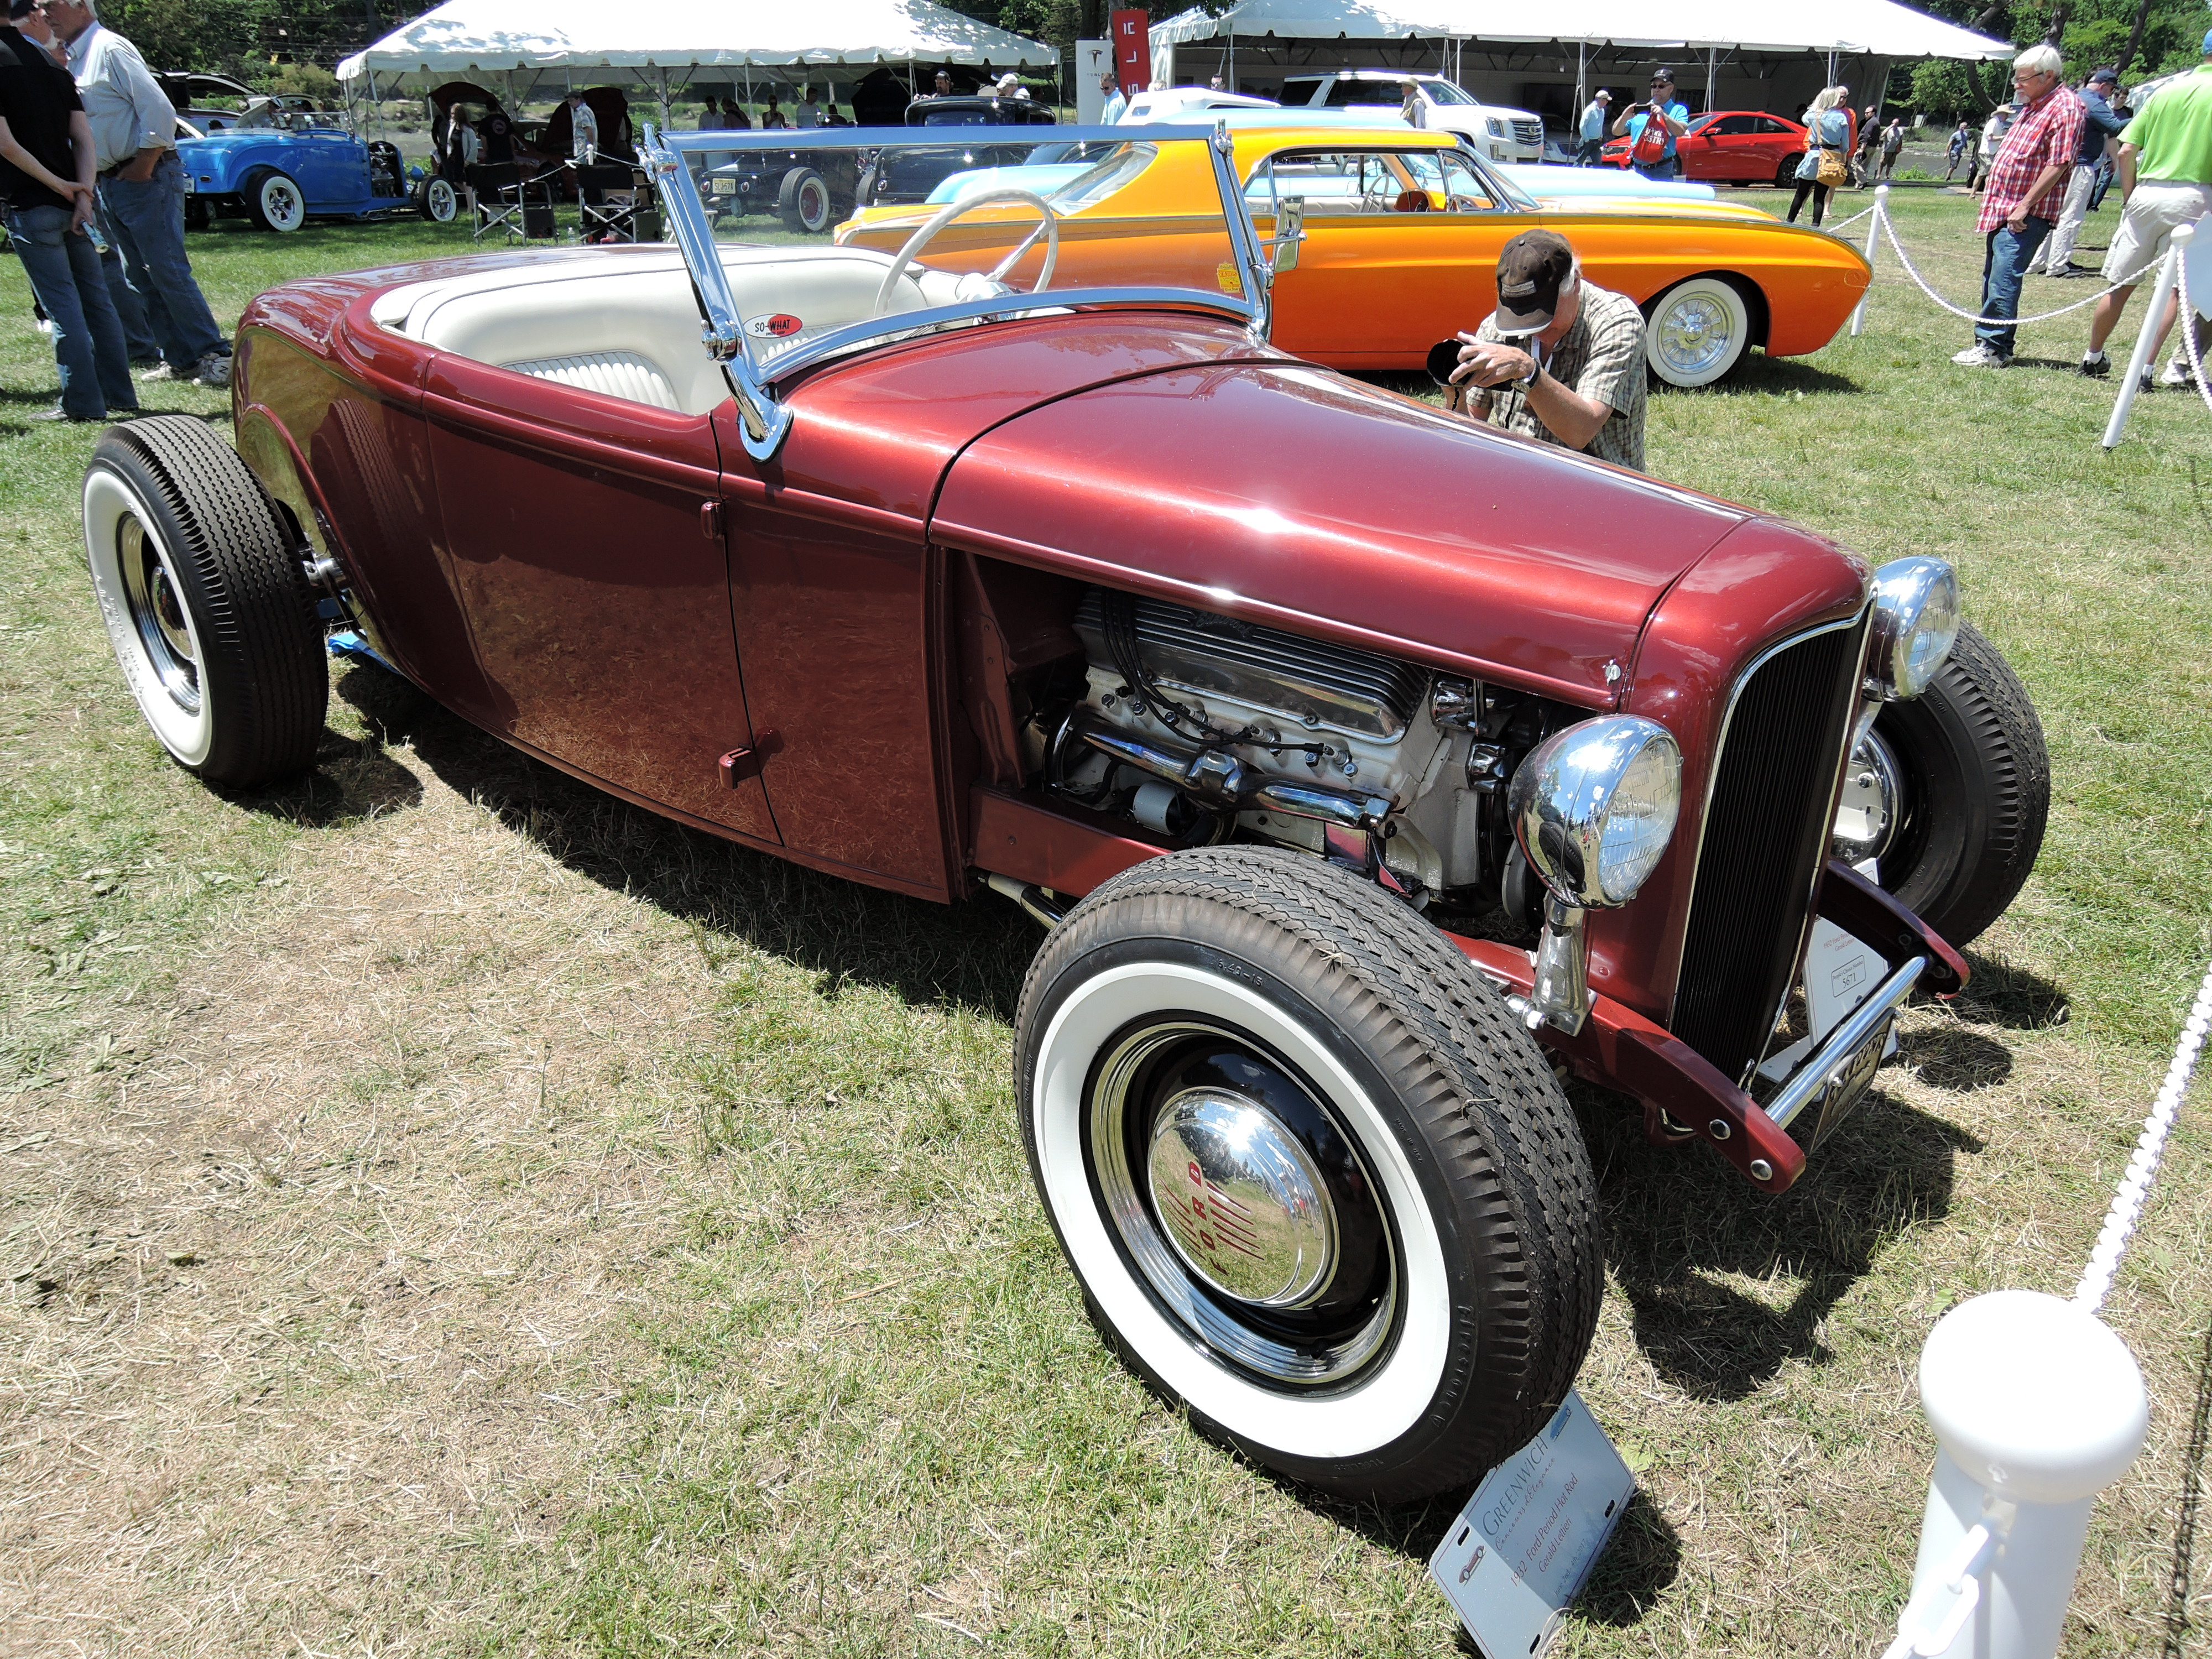 red 1932 Ford Period Hot Rod - Greenwich Concours d'Elegance 2017